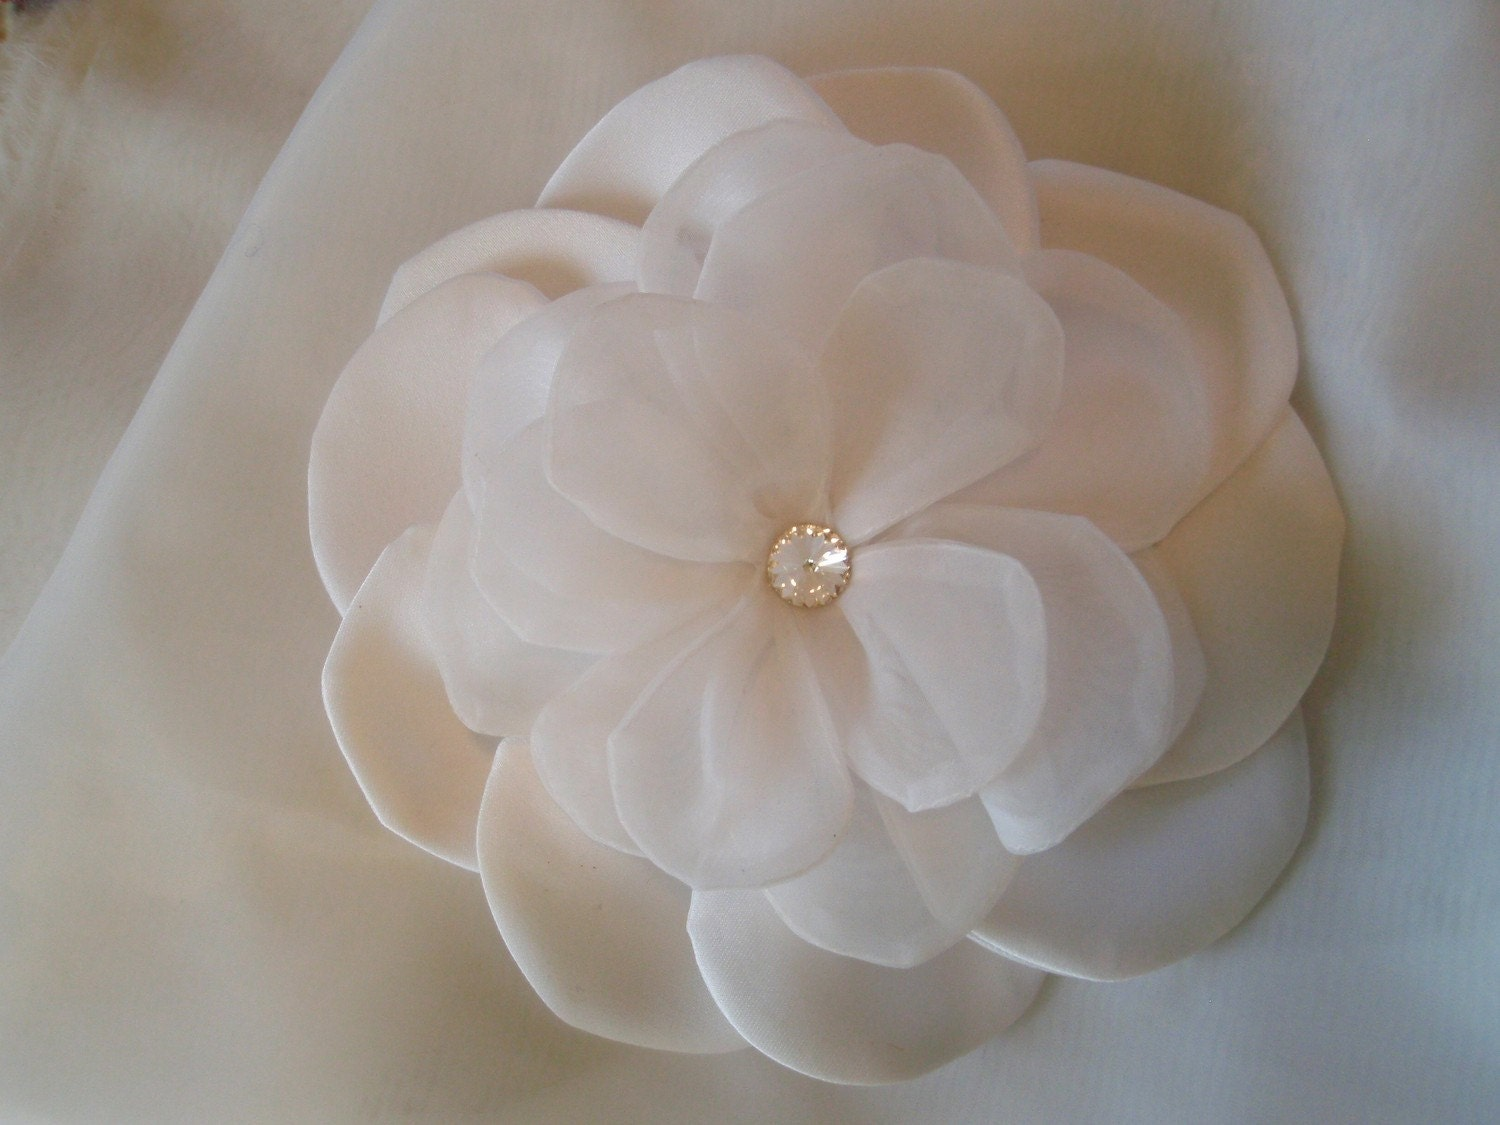 Stunning Large White Bridal Peony with Swarvoski Crystal